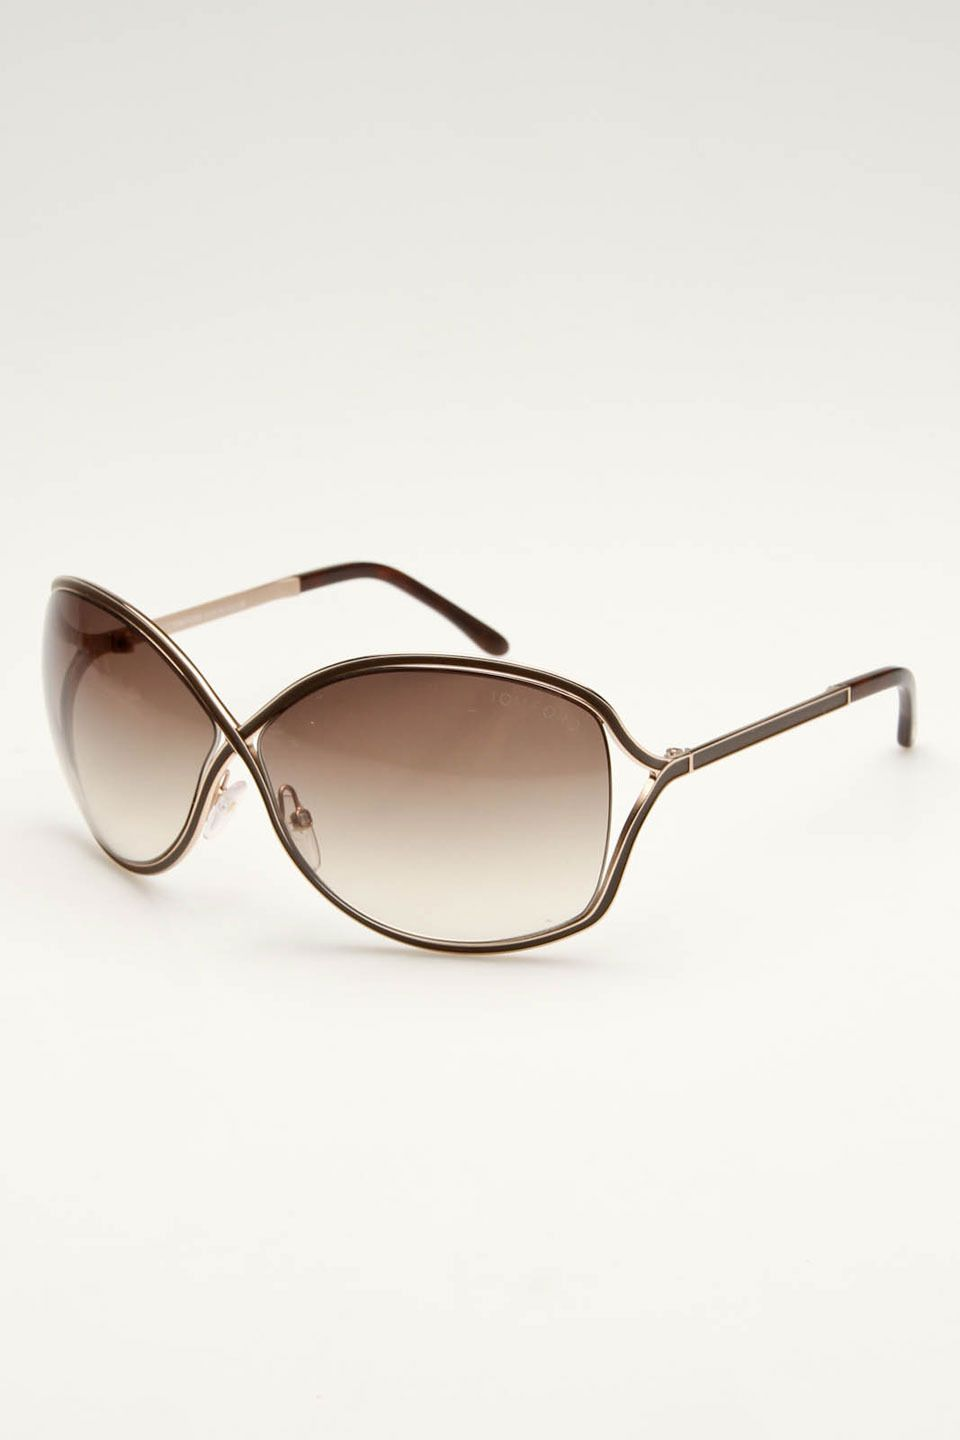 8ca42562f8504 Tom Ford Rickie Sunglasses In Brown and Gold